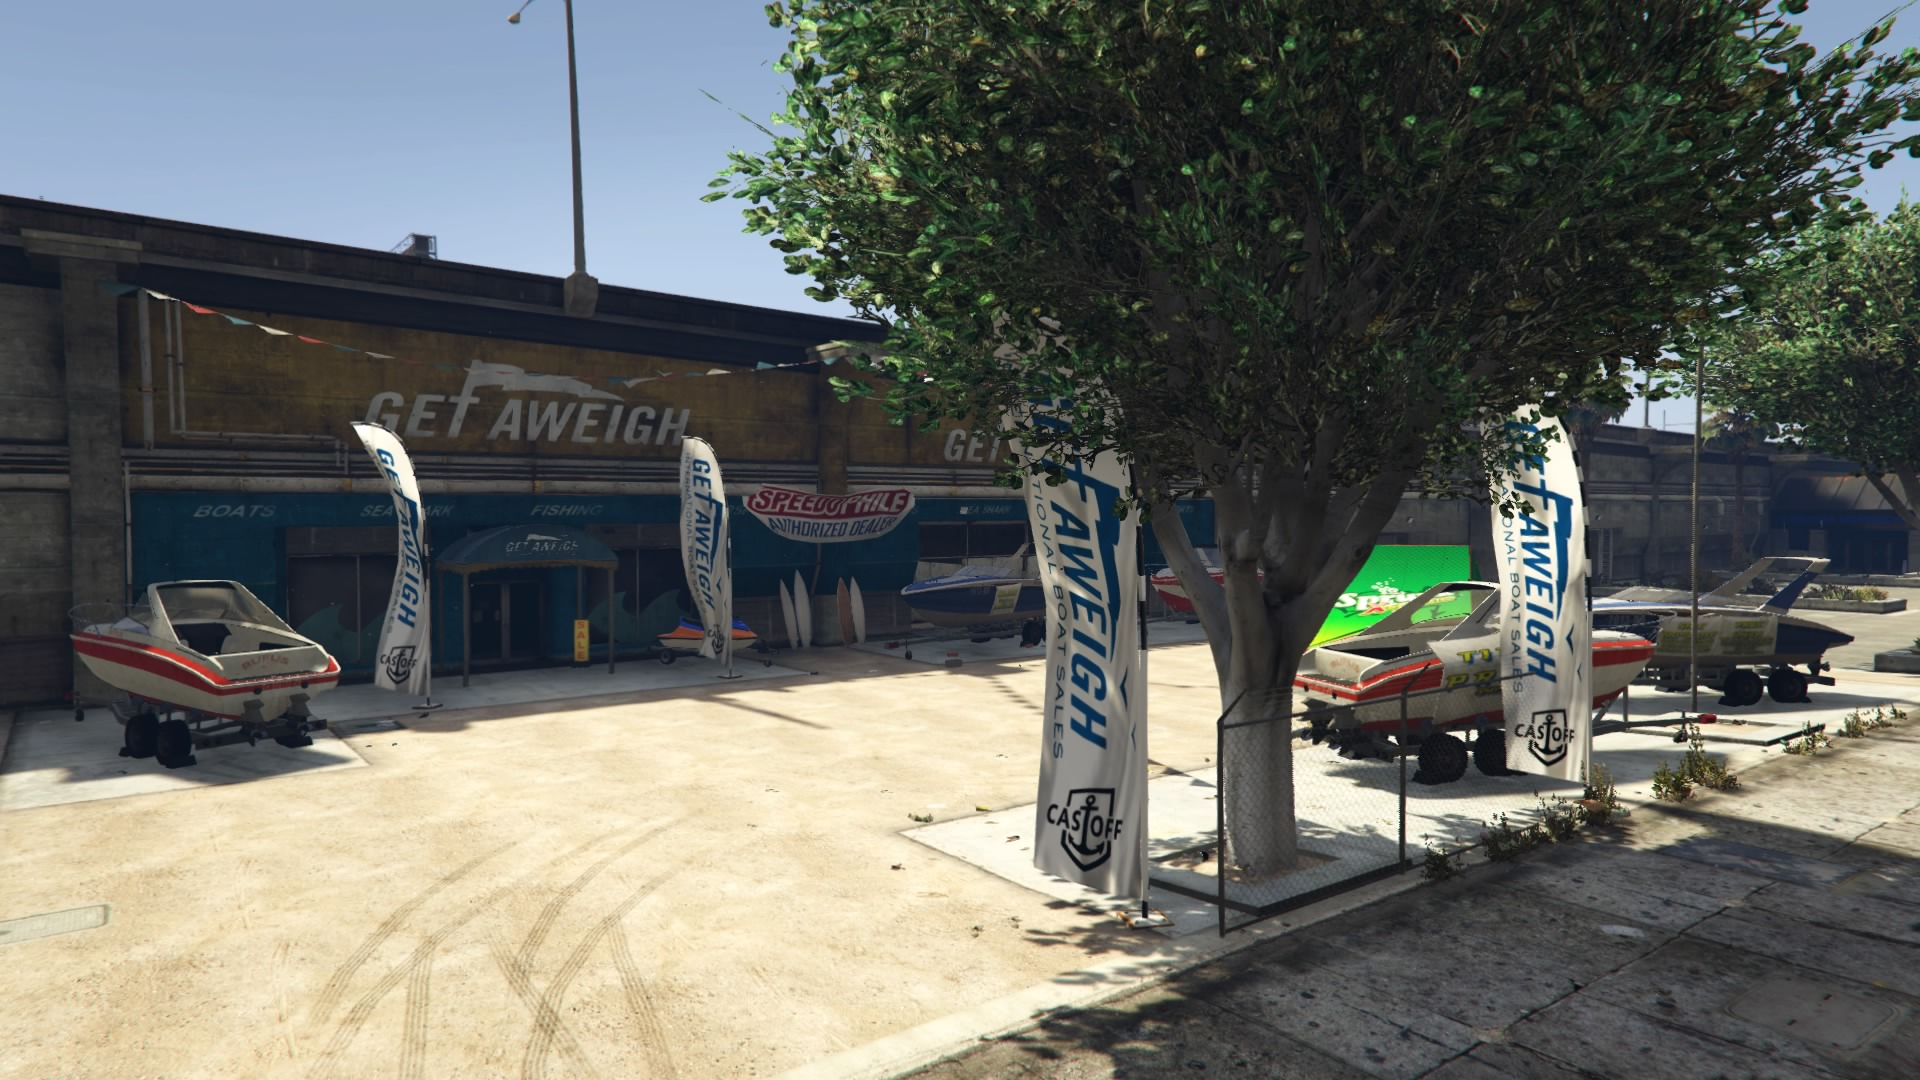 File:GetAweigh-GTAV.png